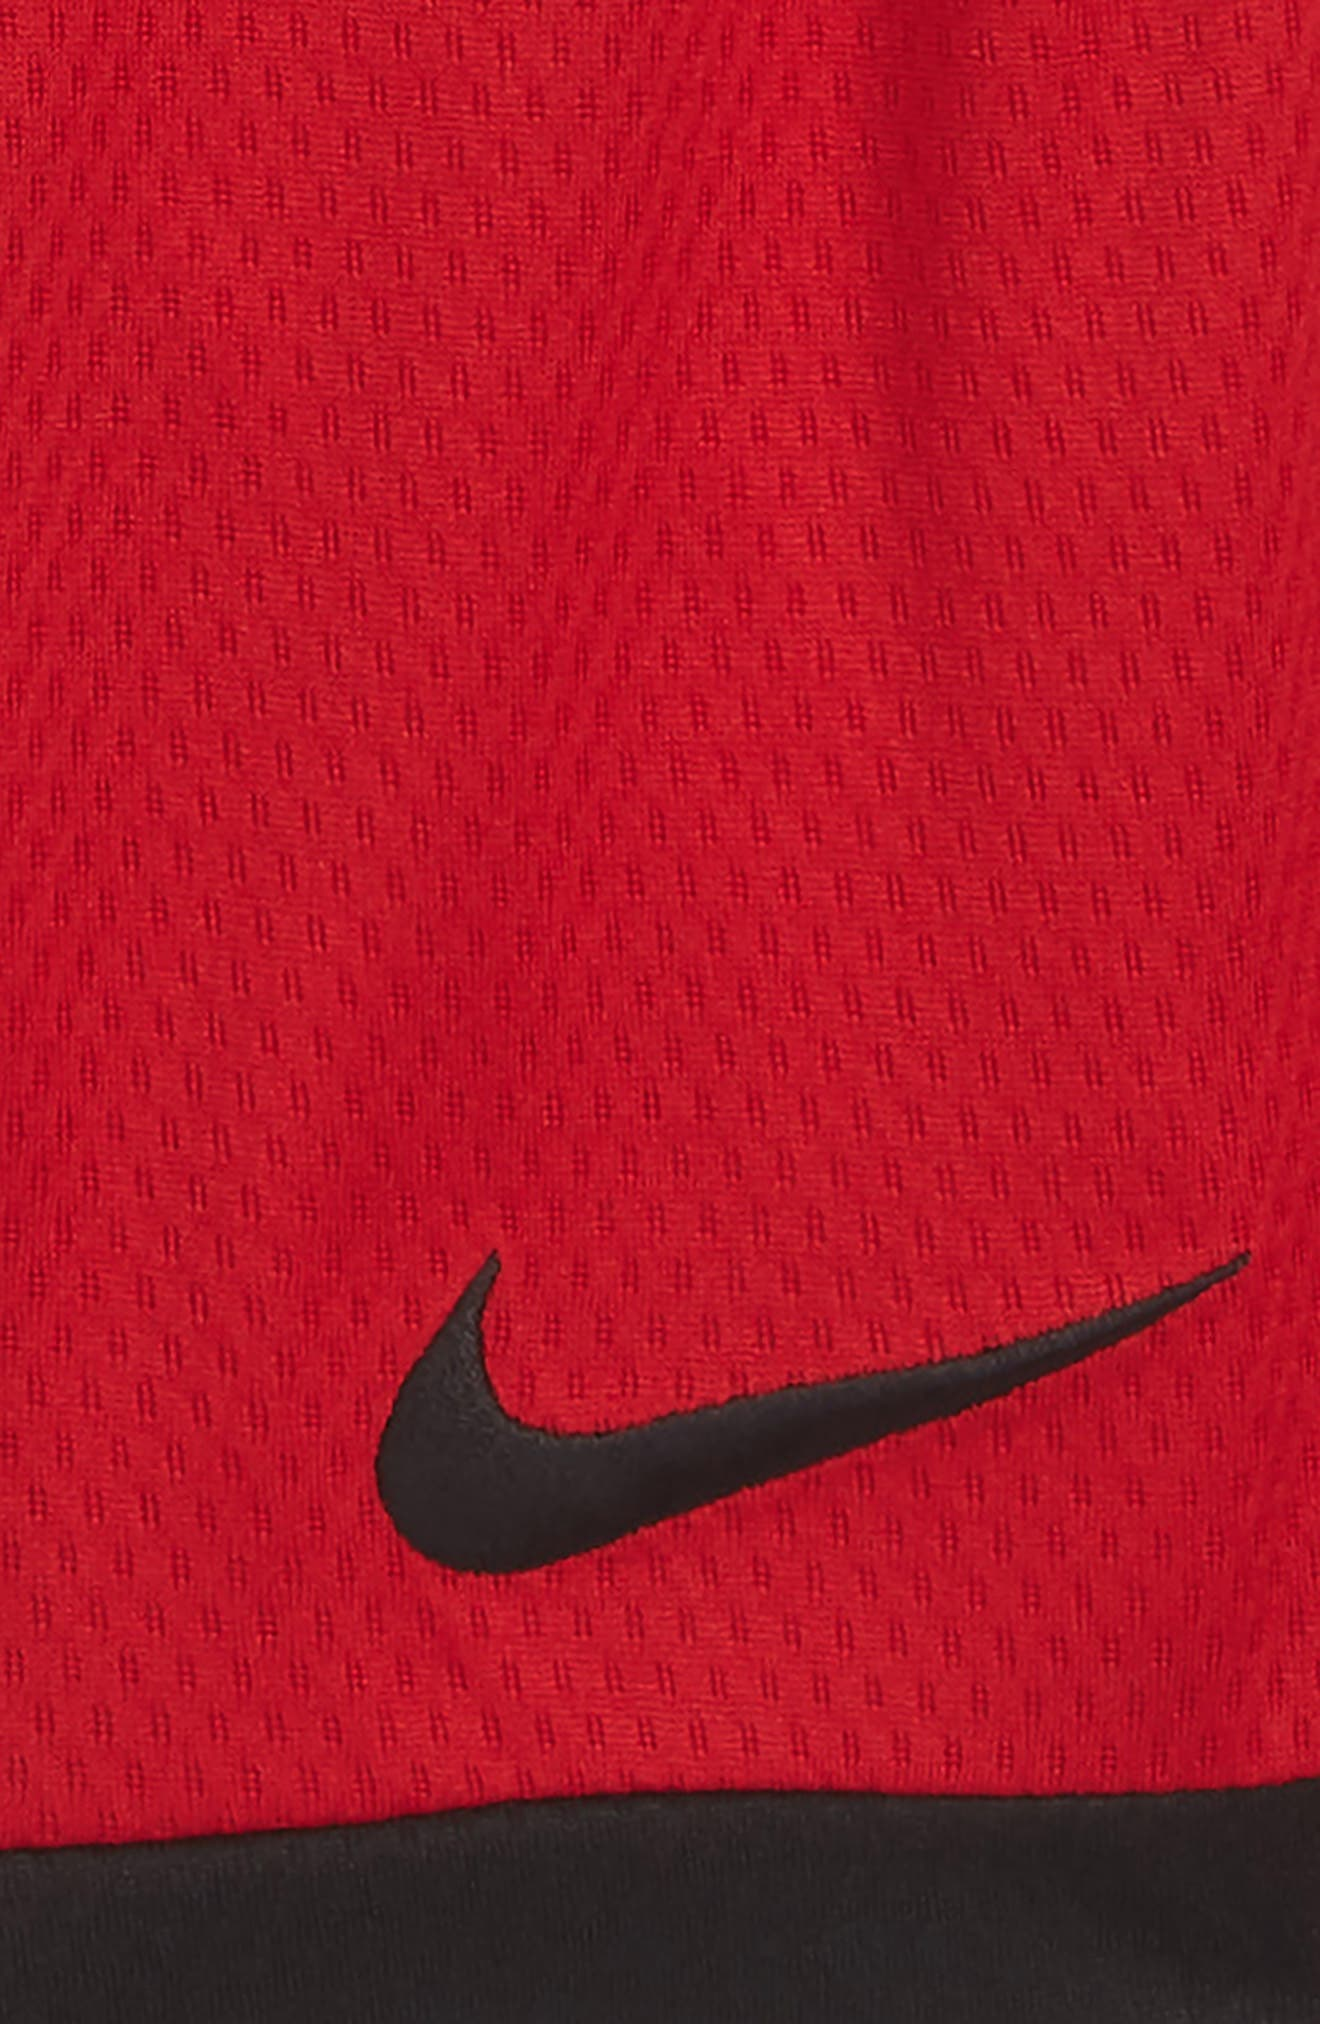 Dry Trophy Shorts,                             Alternate thumbnail 2, color,                             Gym Red